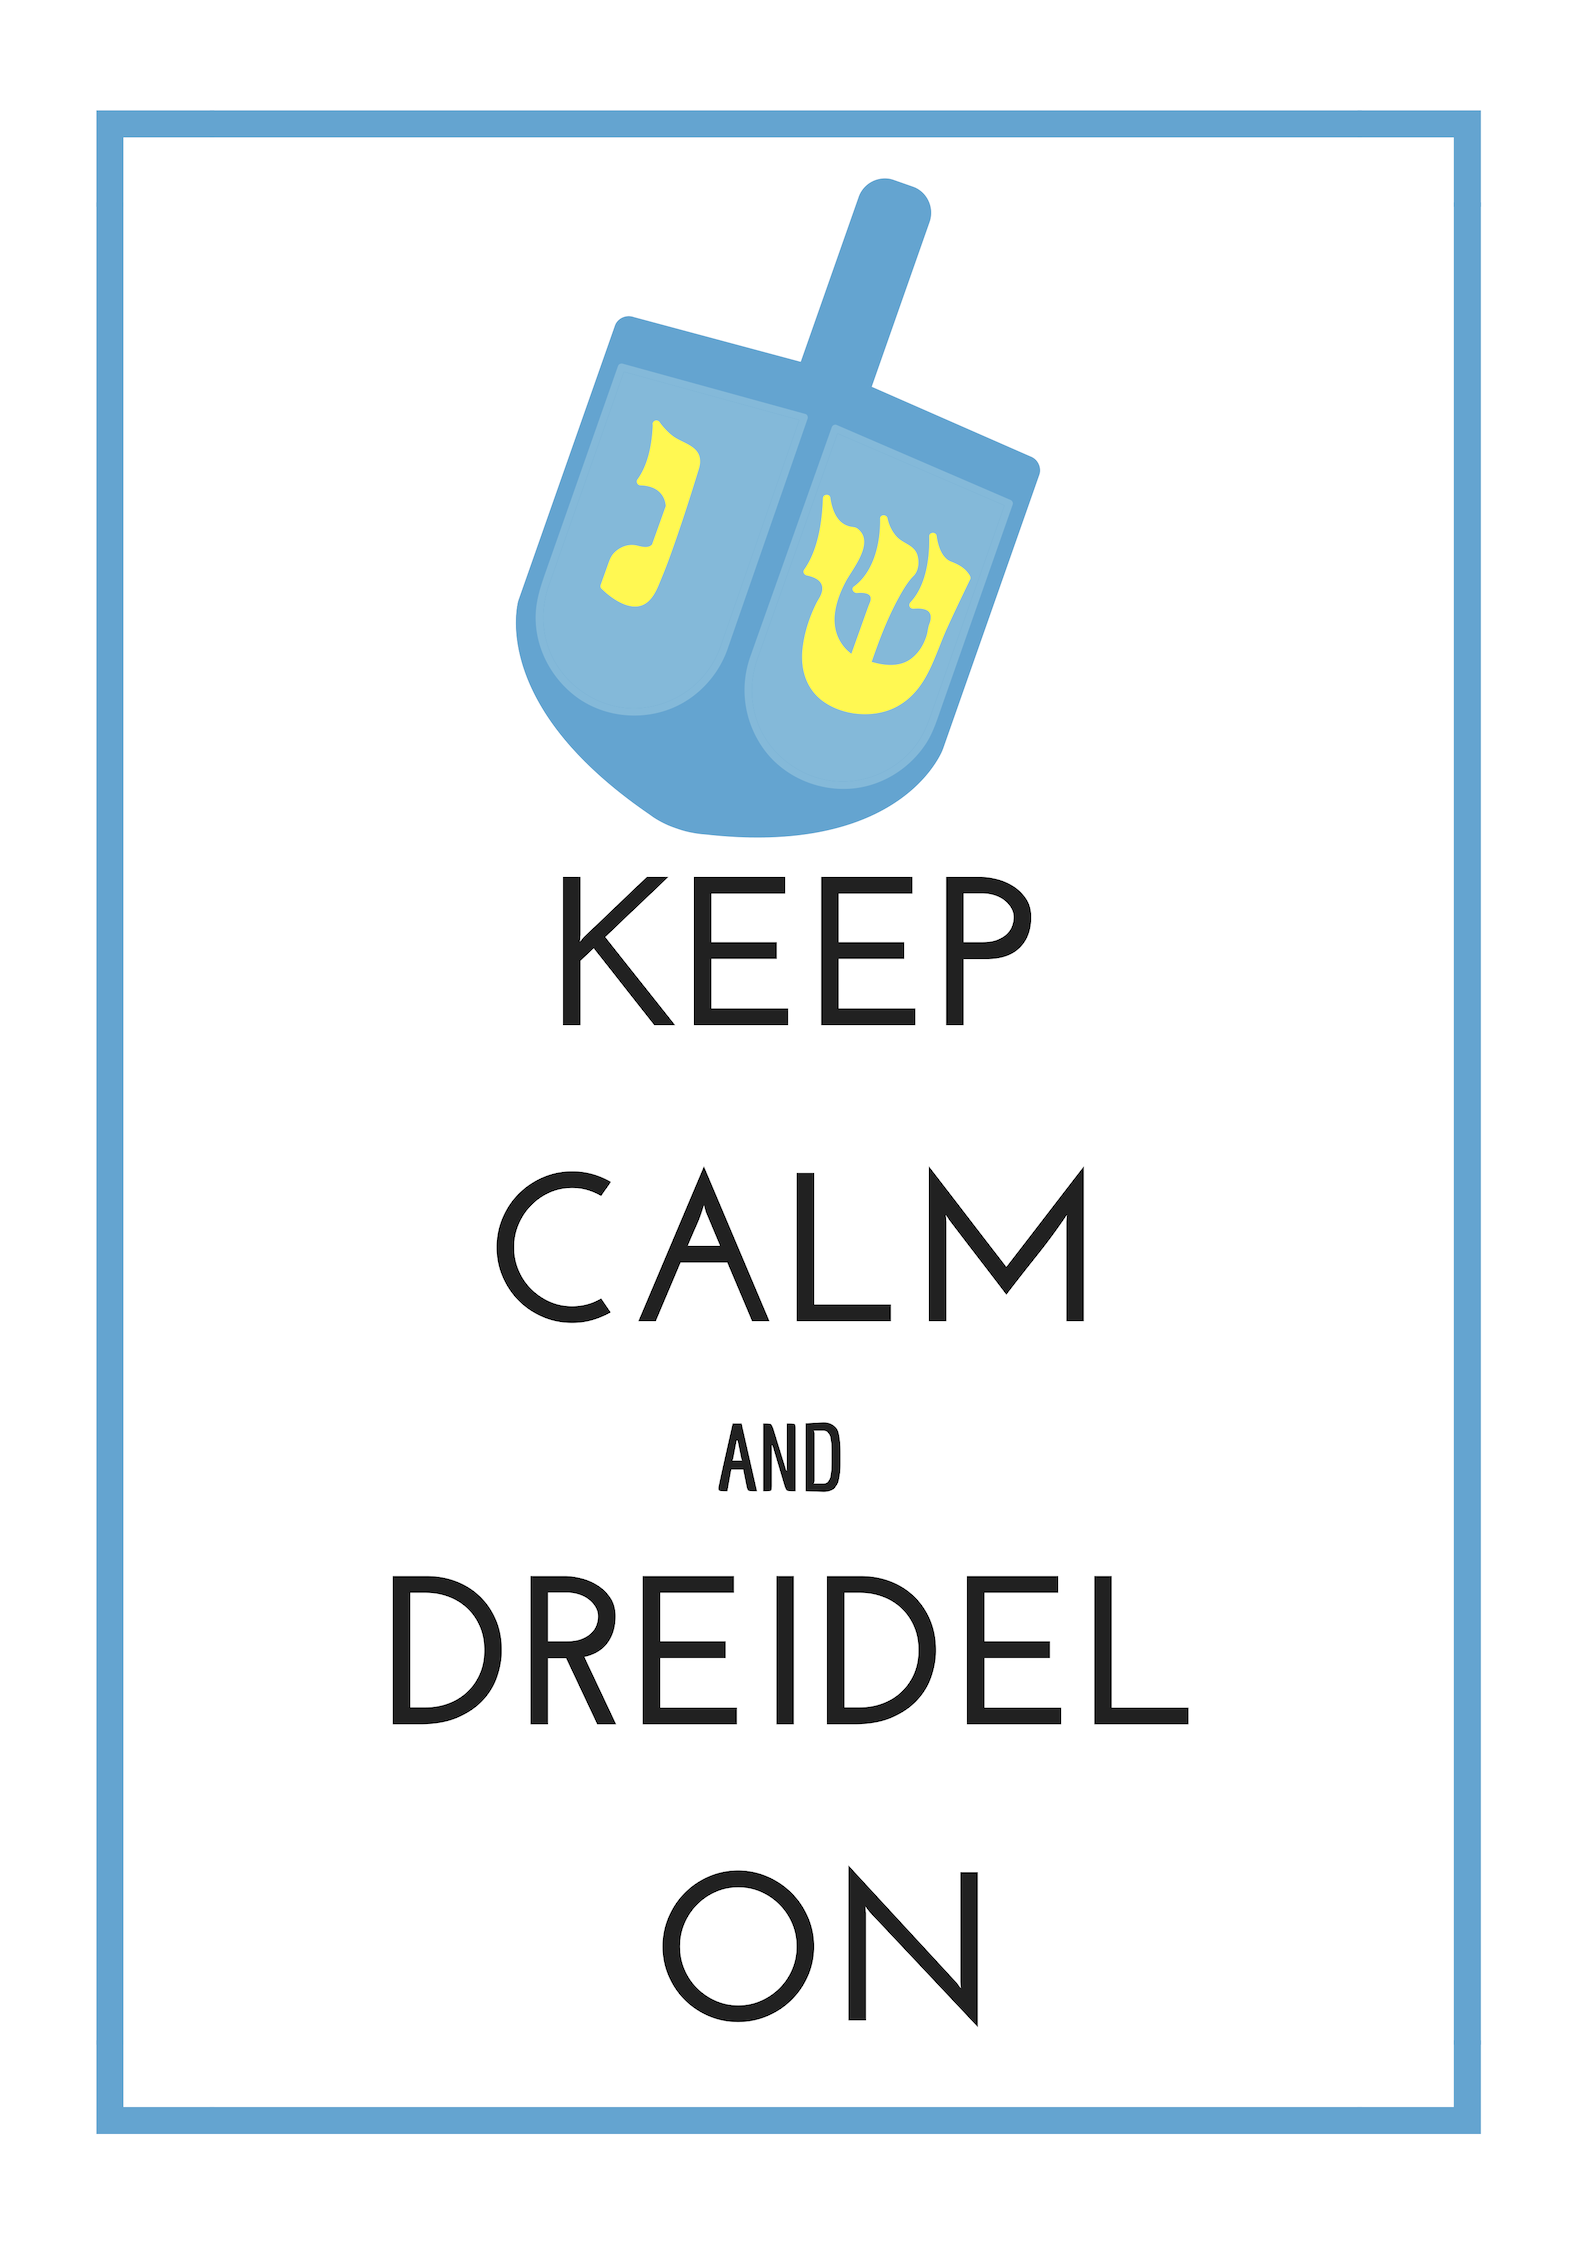 I always have a hard time finding cute Hanukkah decor so I made my own! Click on image for the PNG or you can get the PDF  here .